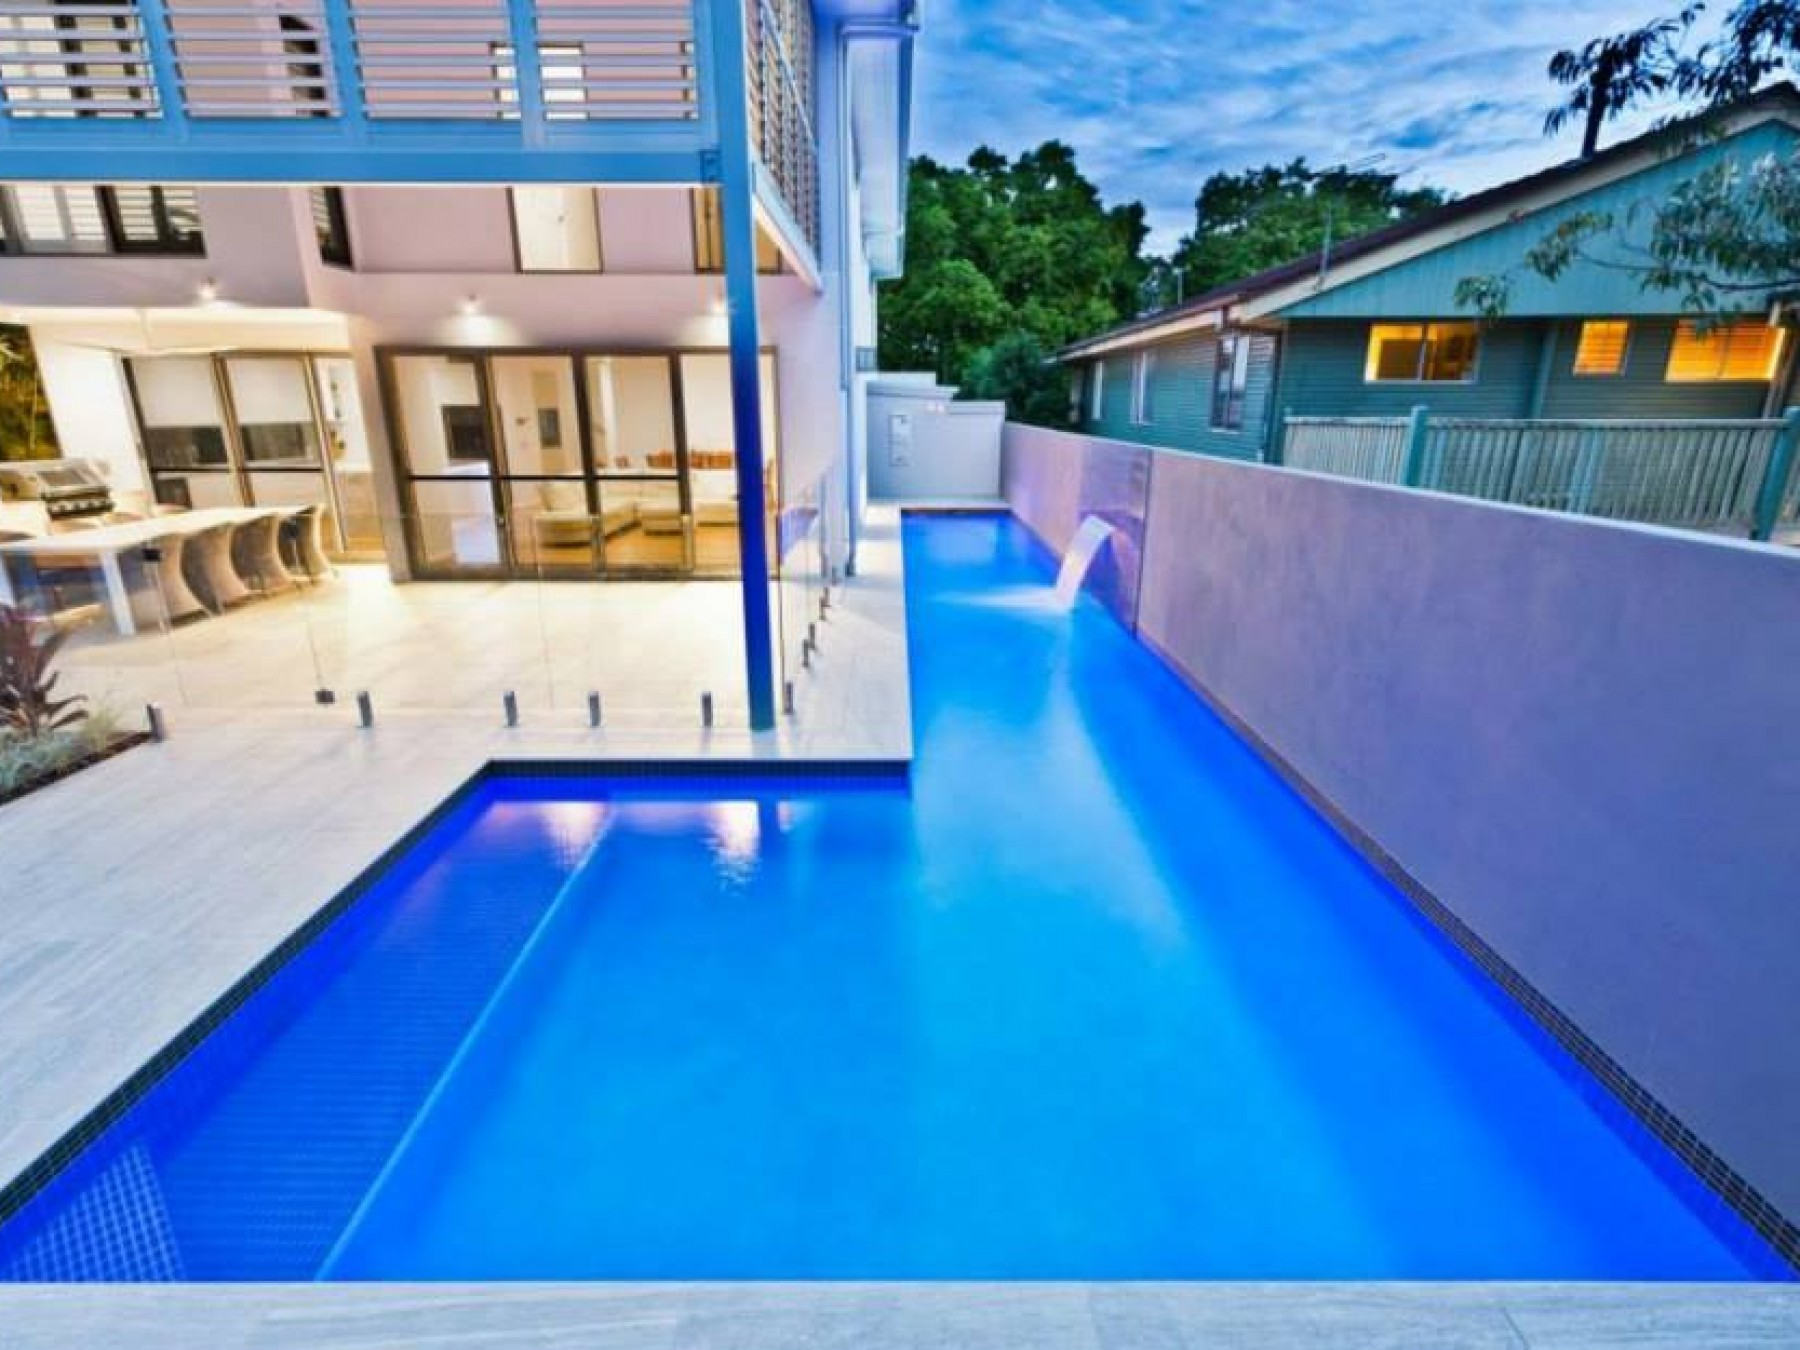 Selling or Leasing a pool in Calamvale